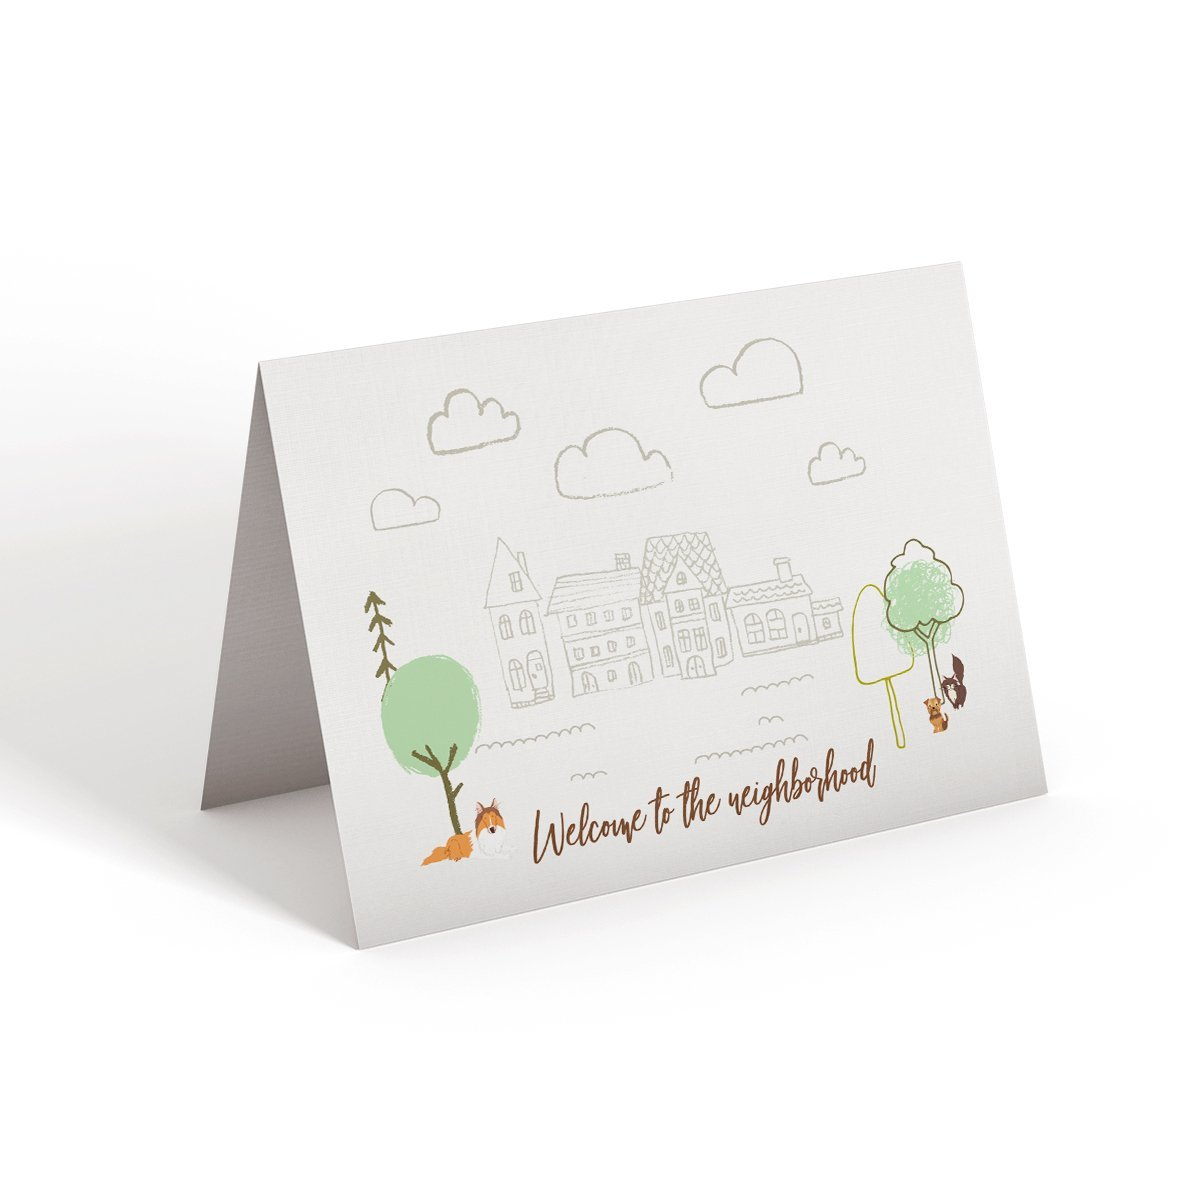 Welcome to the neighborhood - Greeting Card - Netties Expressions